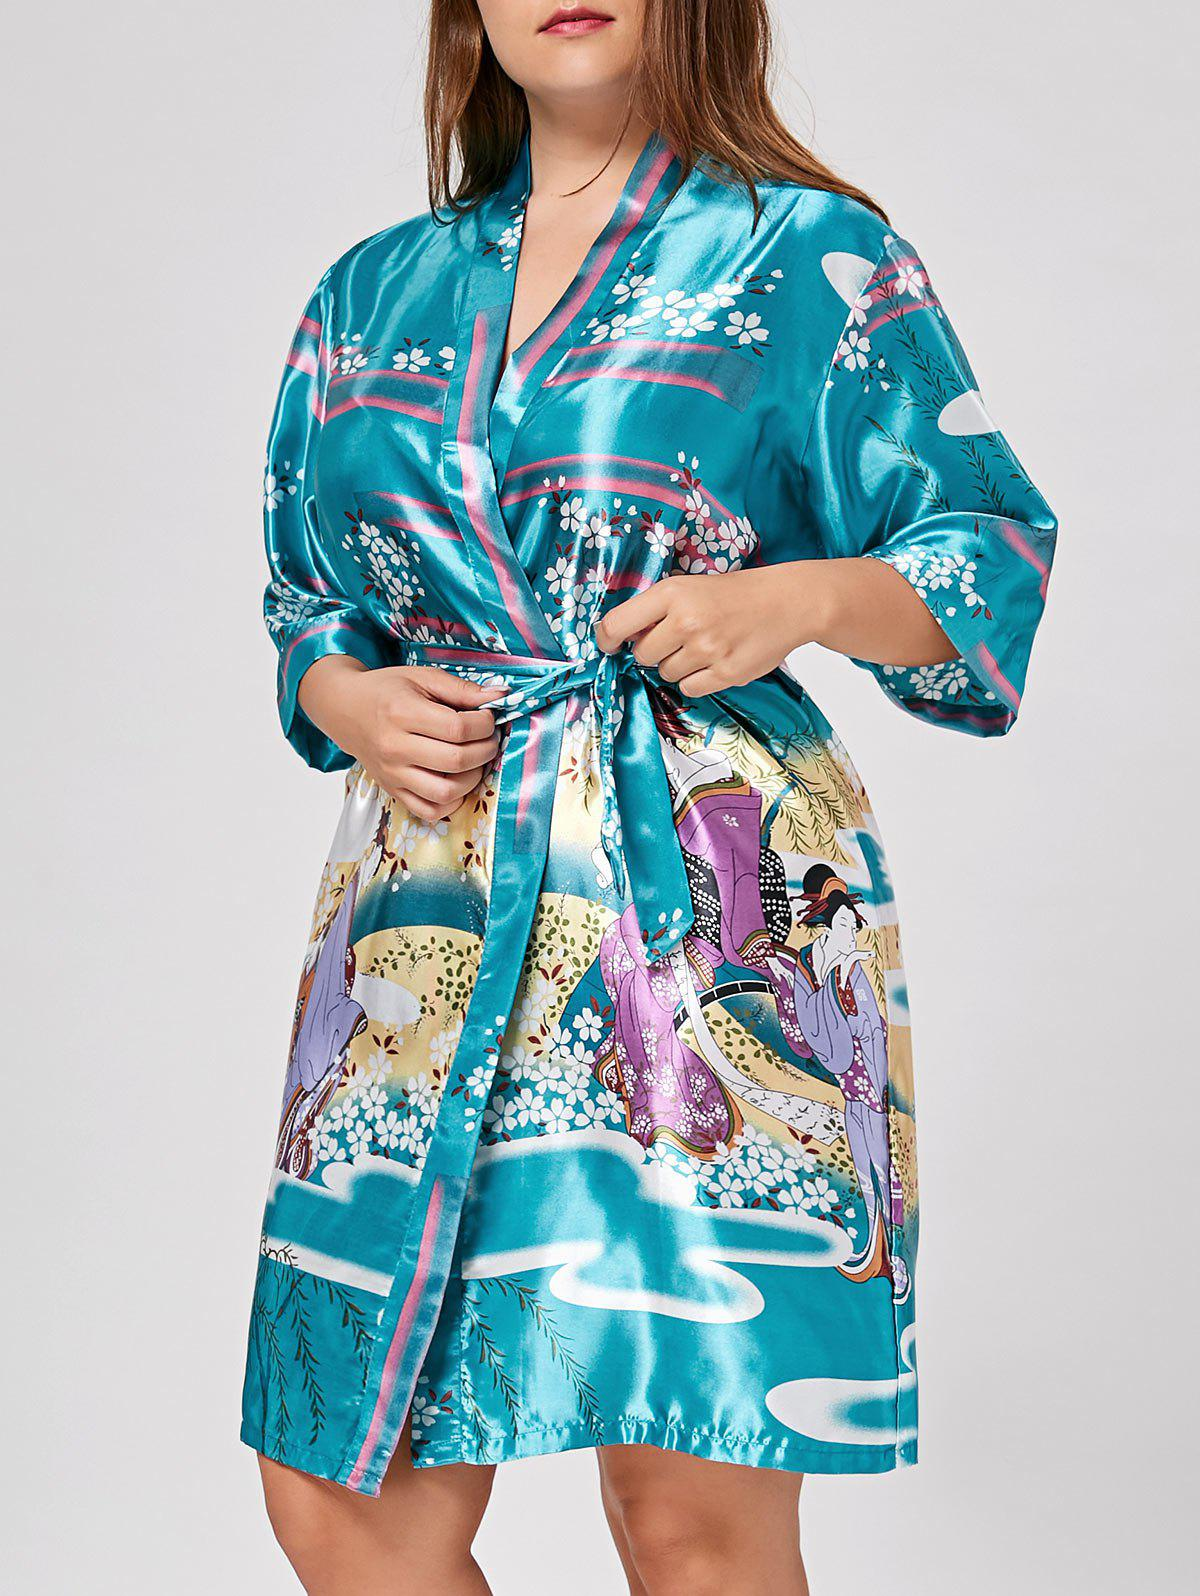 Plus Size Floral Satin Pajama KimonoWOMEN<br><br>Size: XL; Color: LAKE BLUE; Material: Polyester; Pattern Type: Floral; Embellishment: Sashes; Weight: 0.3000kg; Package Contents: 1 x Kimono  1 x Belt;